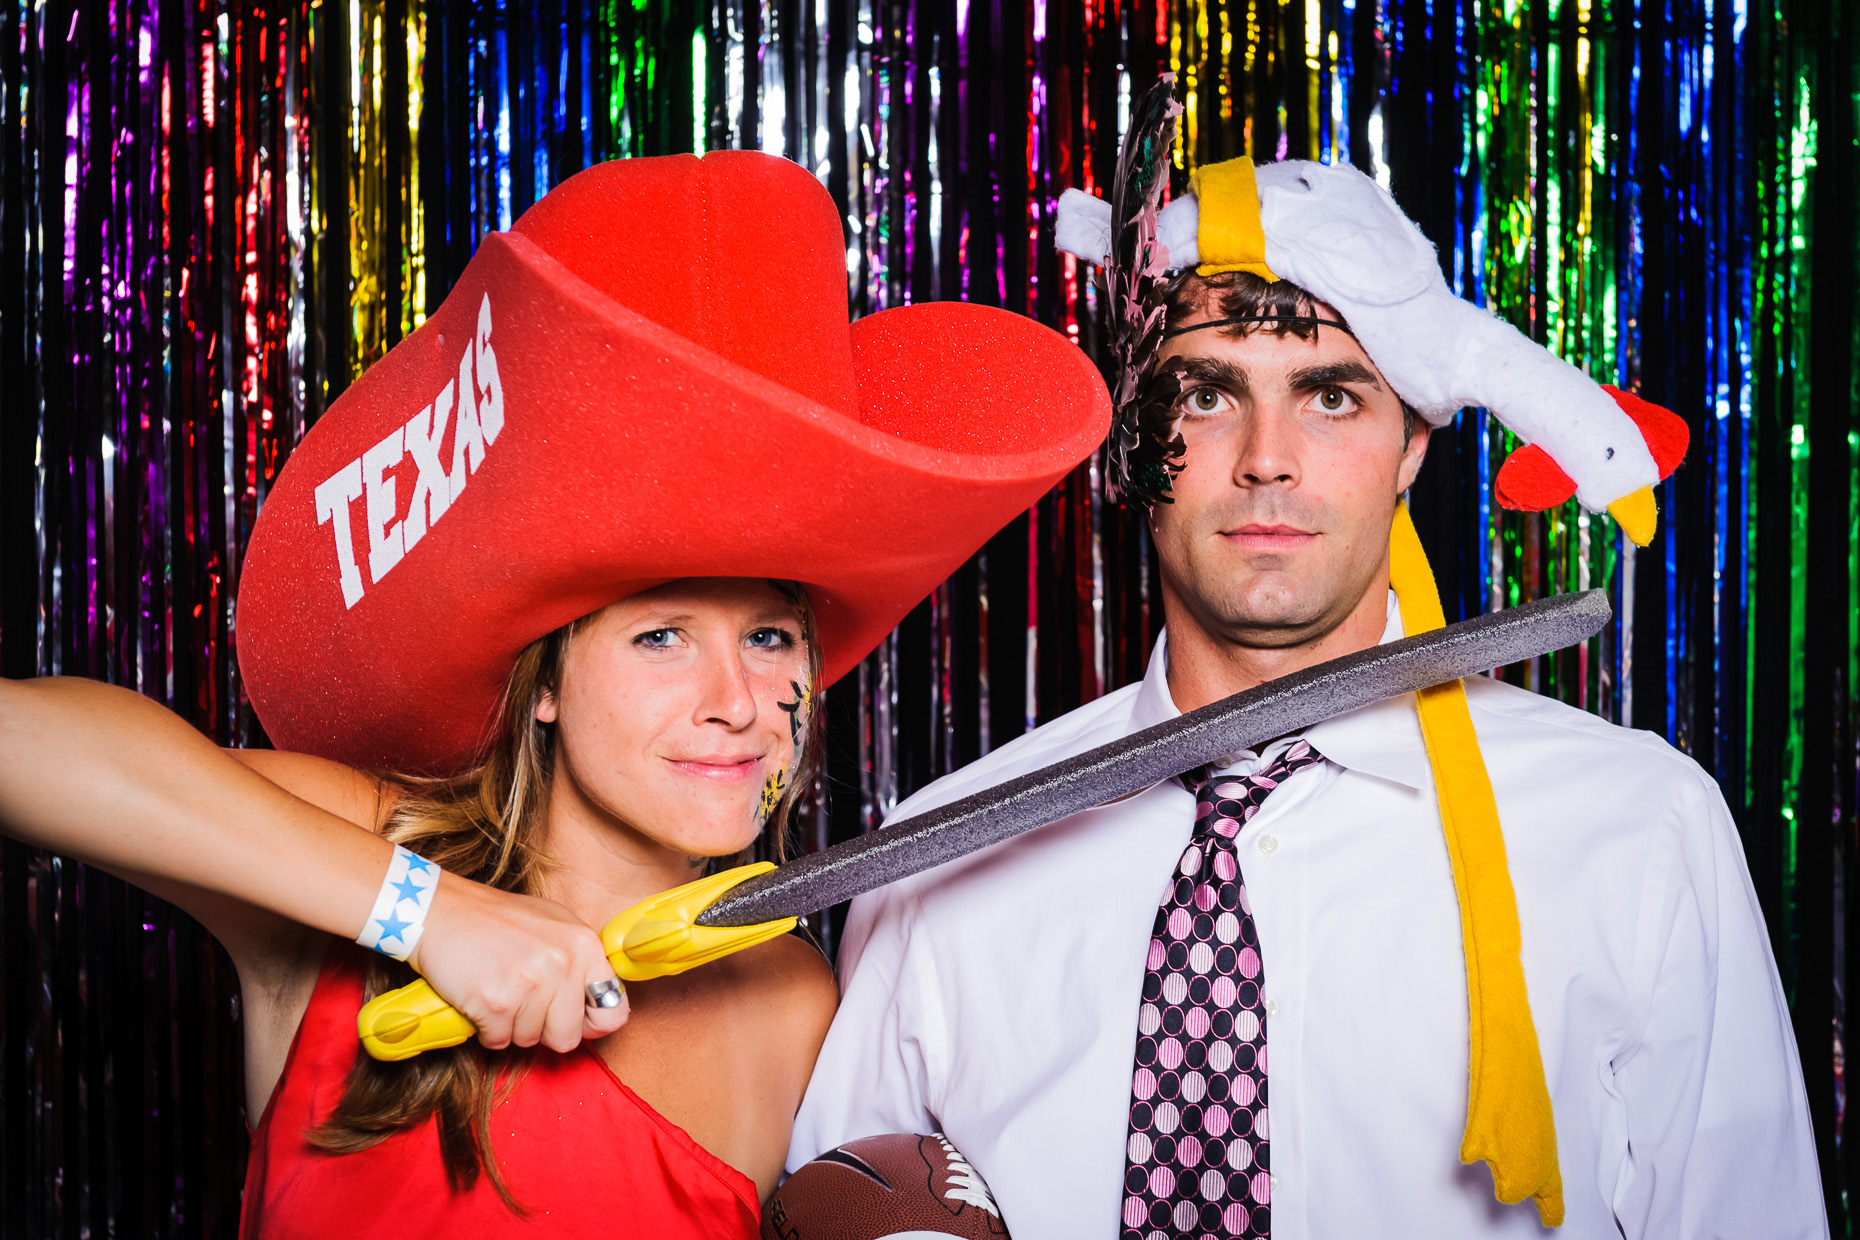 Photobooth-Austin-Event-Commercial-Photographer-Costumes.jpg